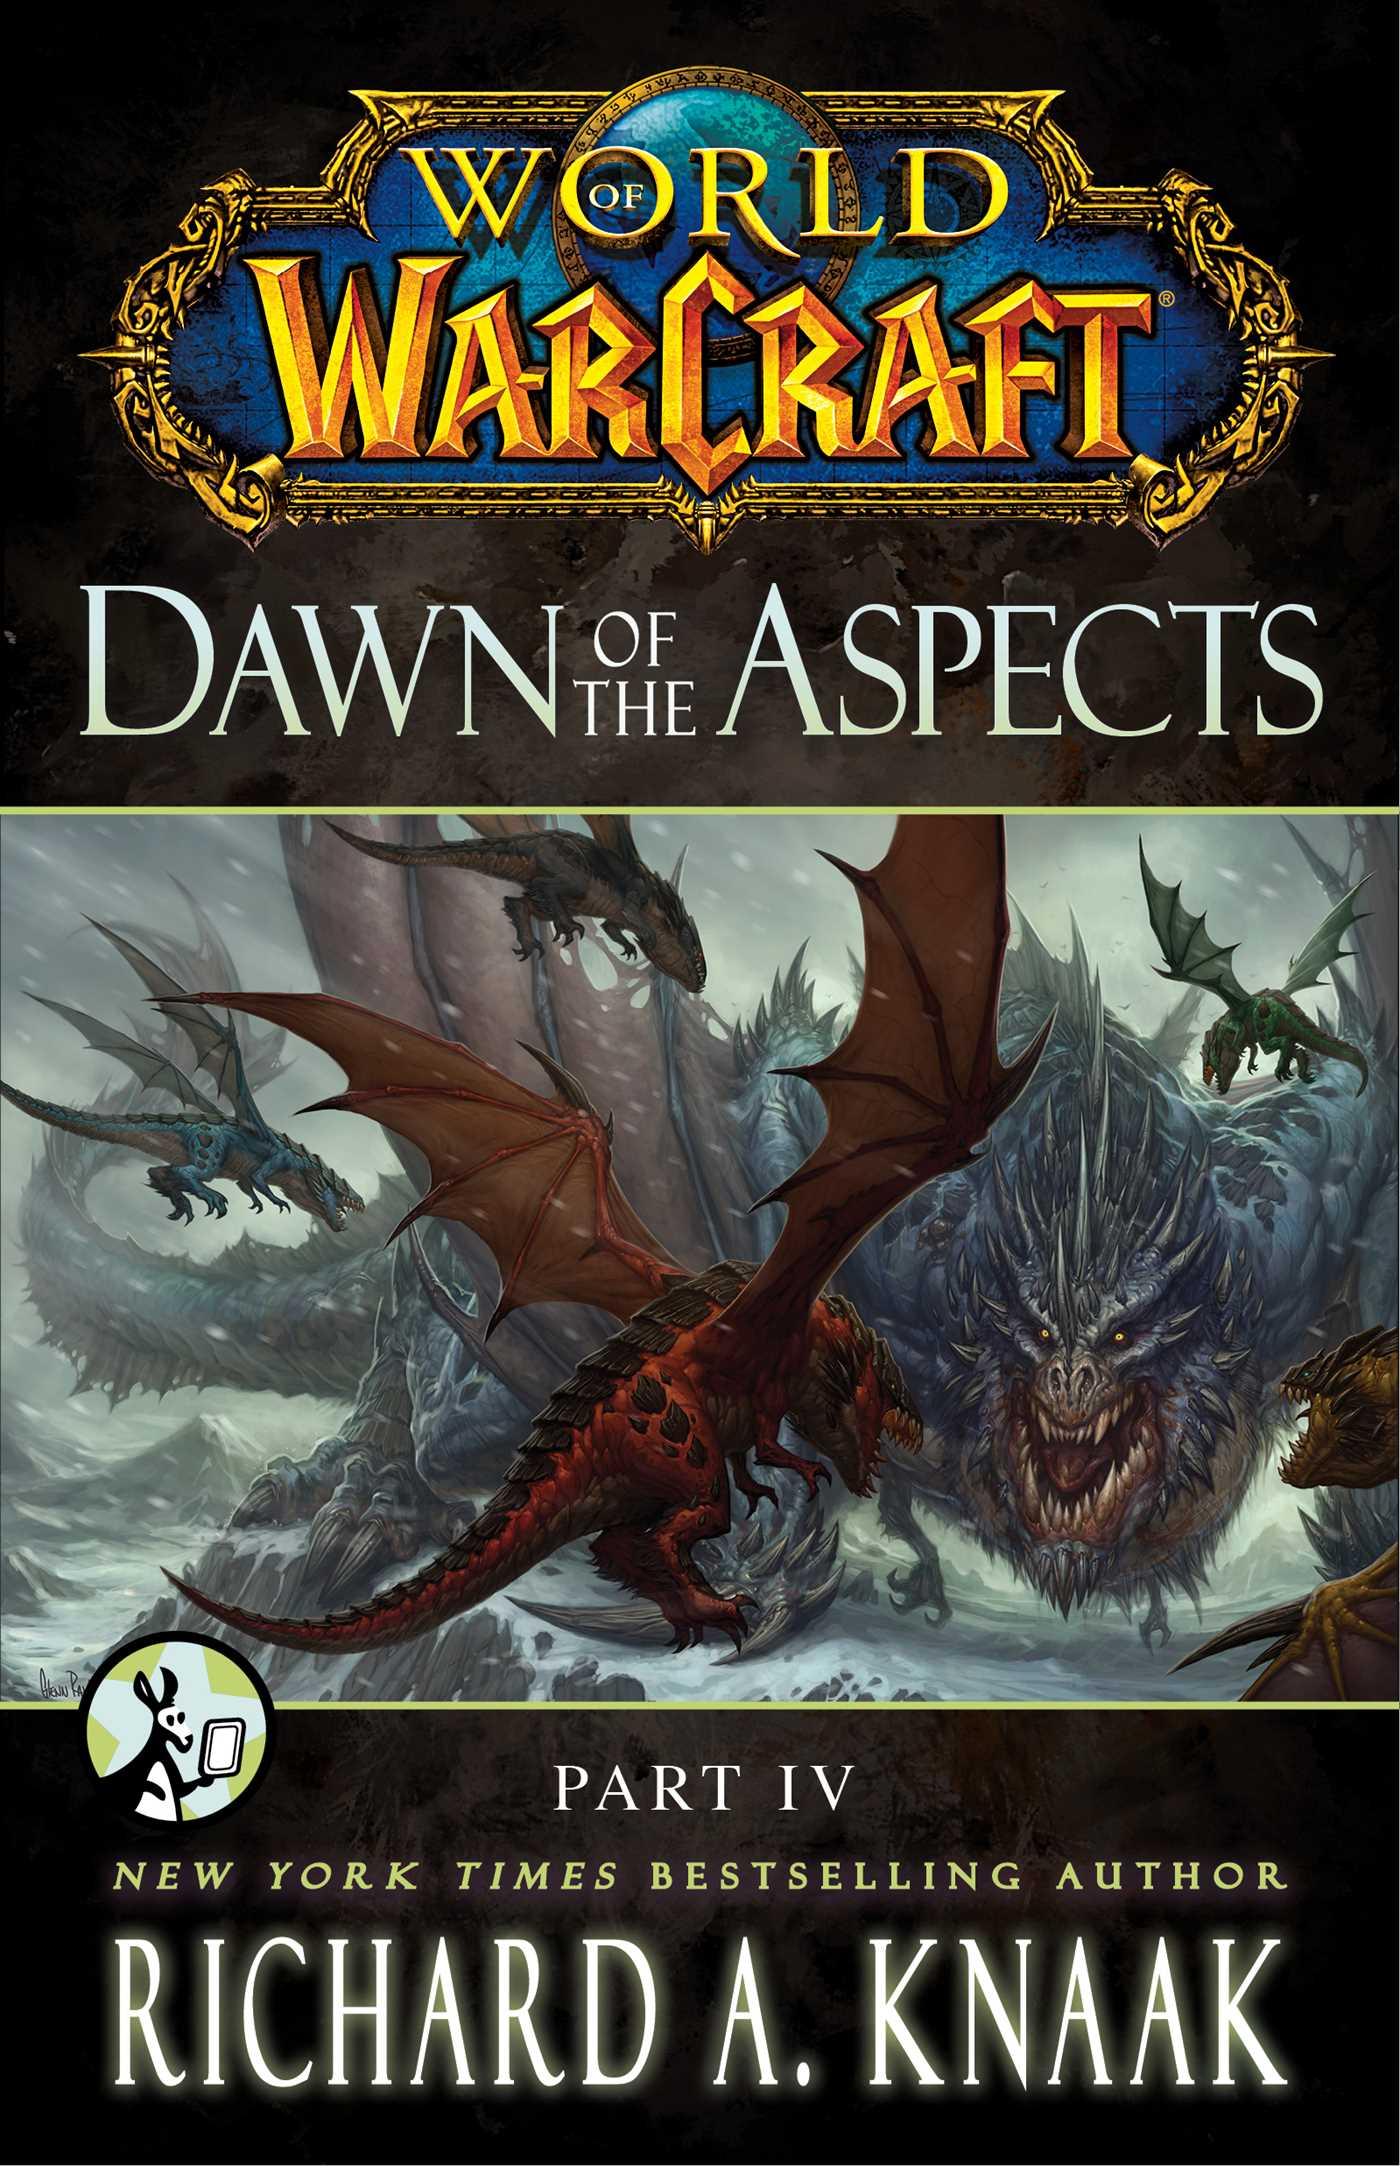 World-of-warcraft-dawn-of-the-aspects-part-iv-9781476708638_hr